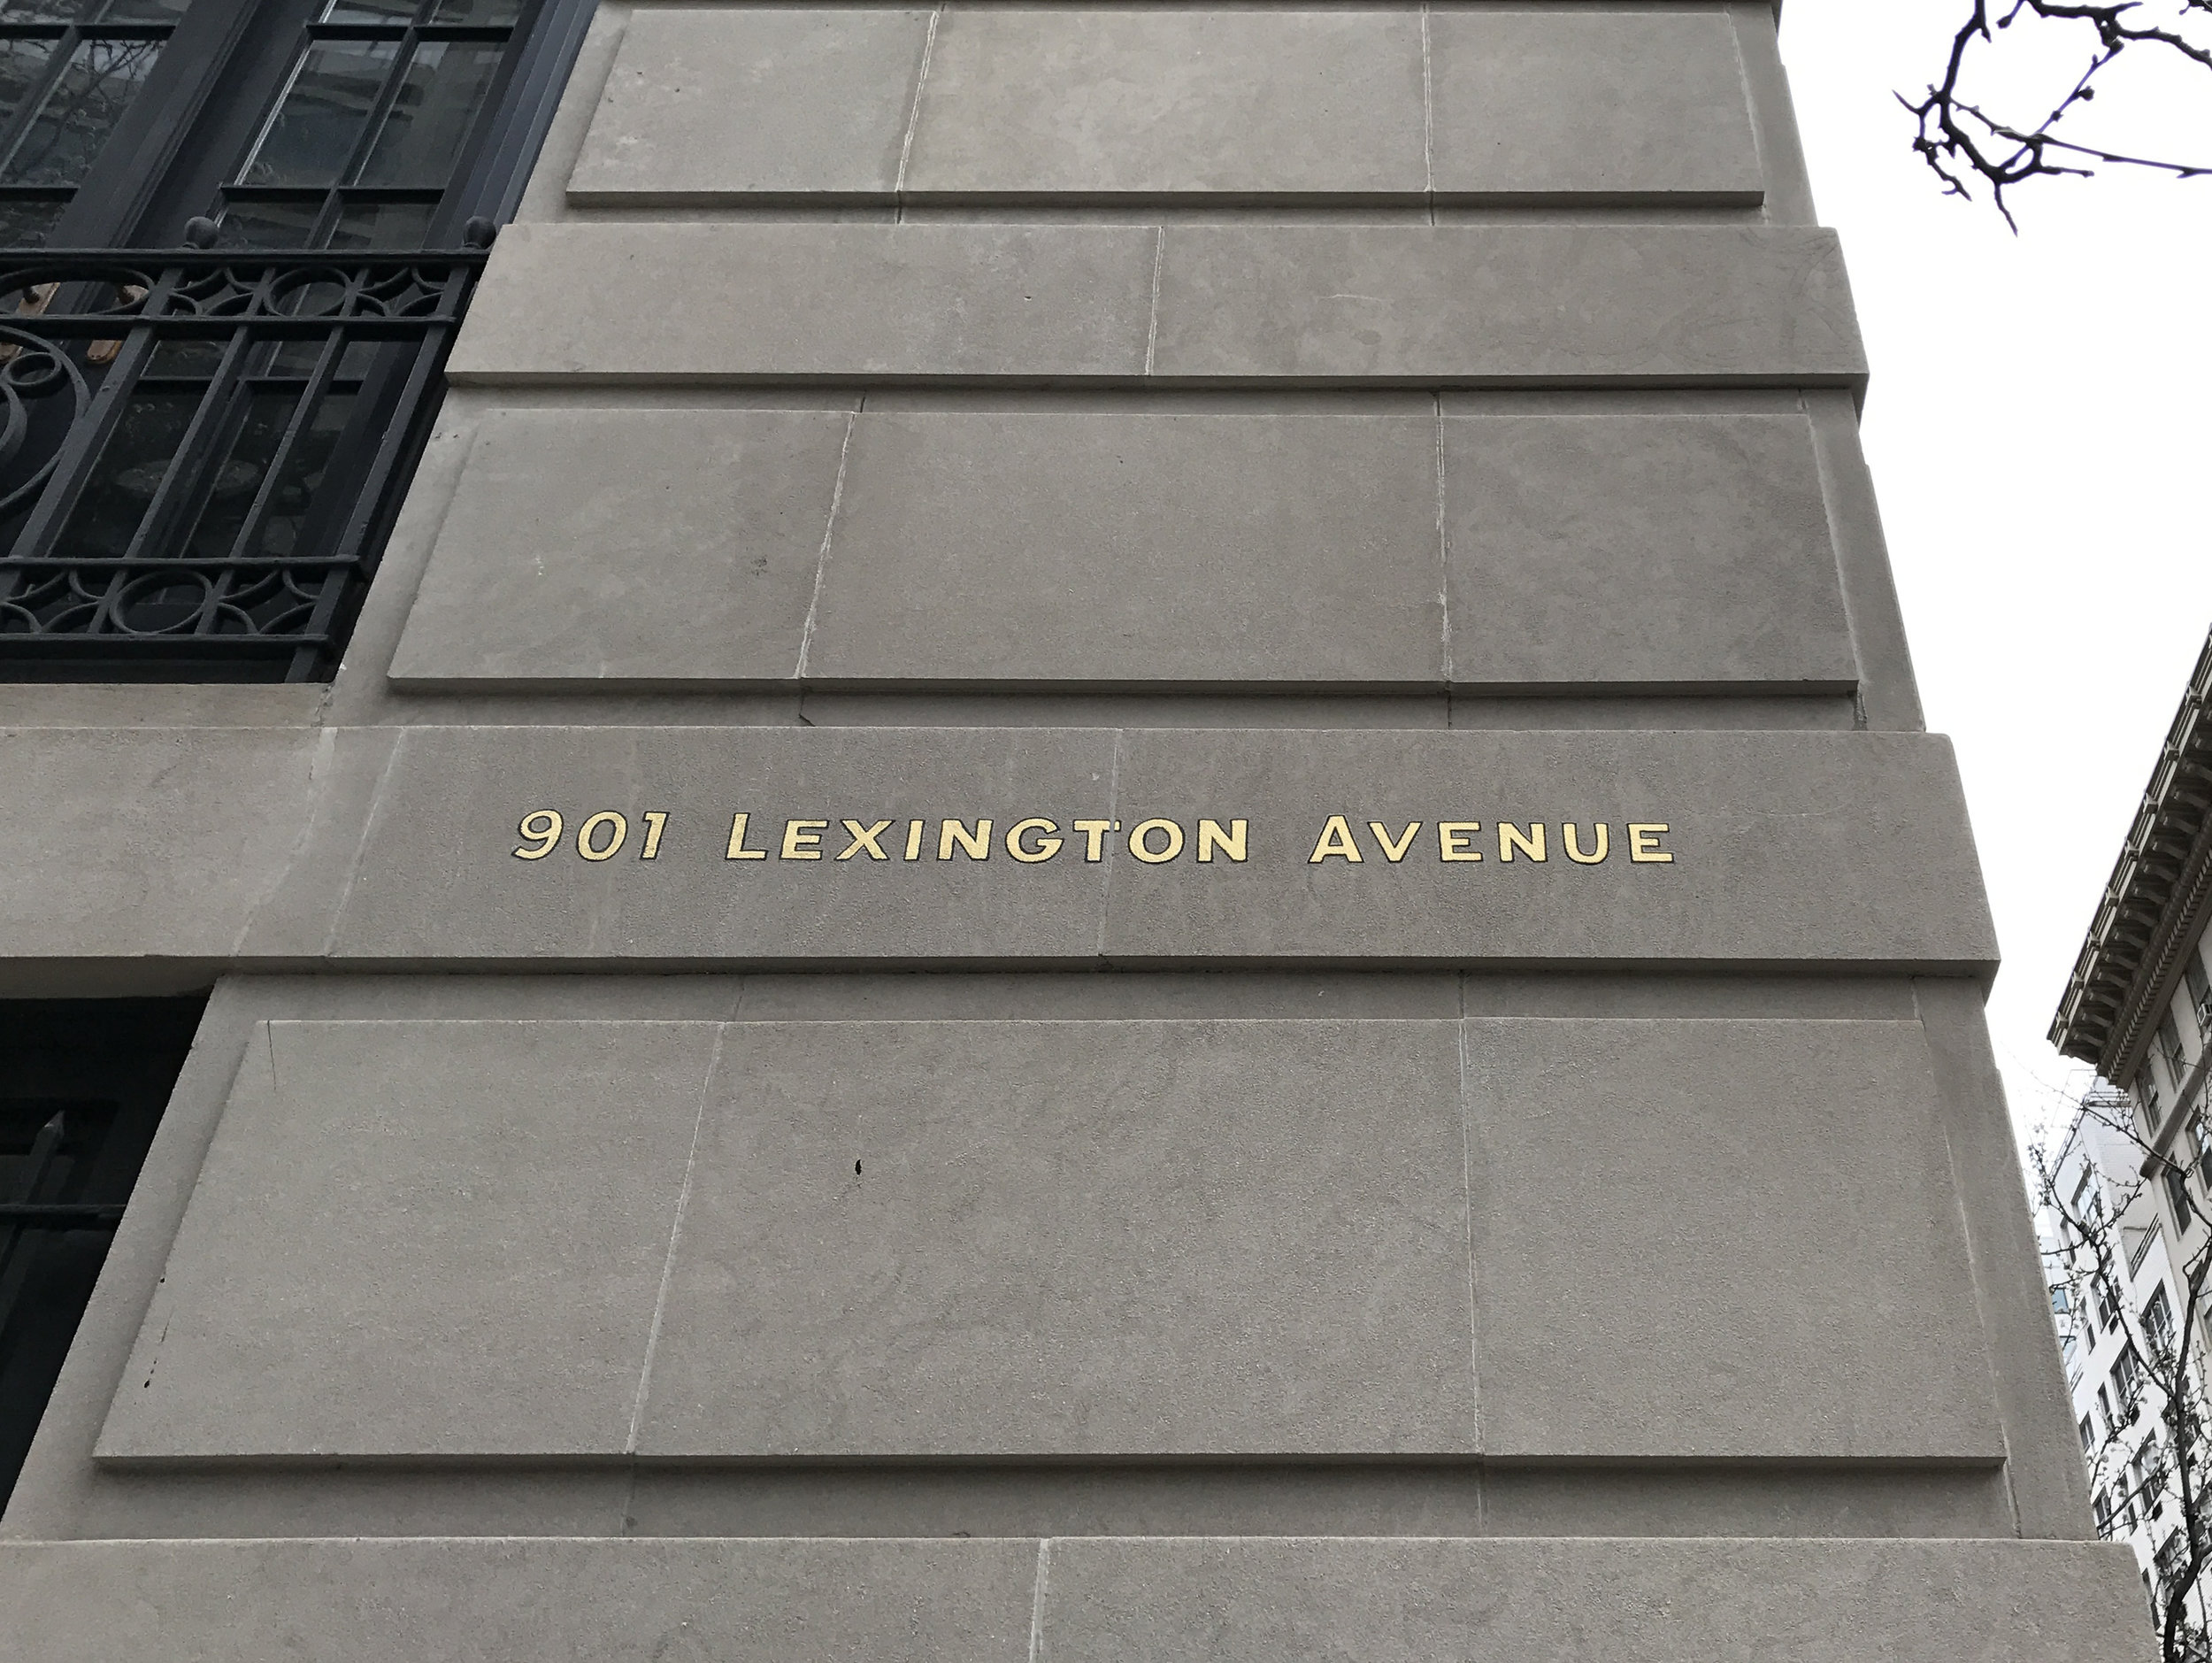 901 LEXINGTON AVENUE, UPPER EAST SIDE